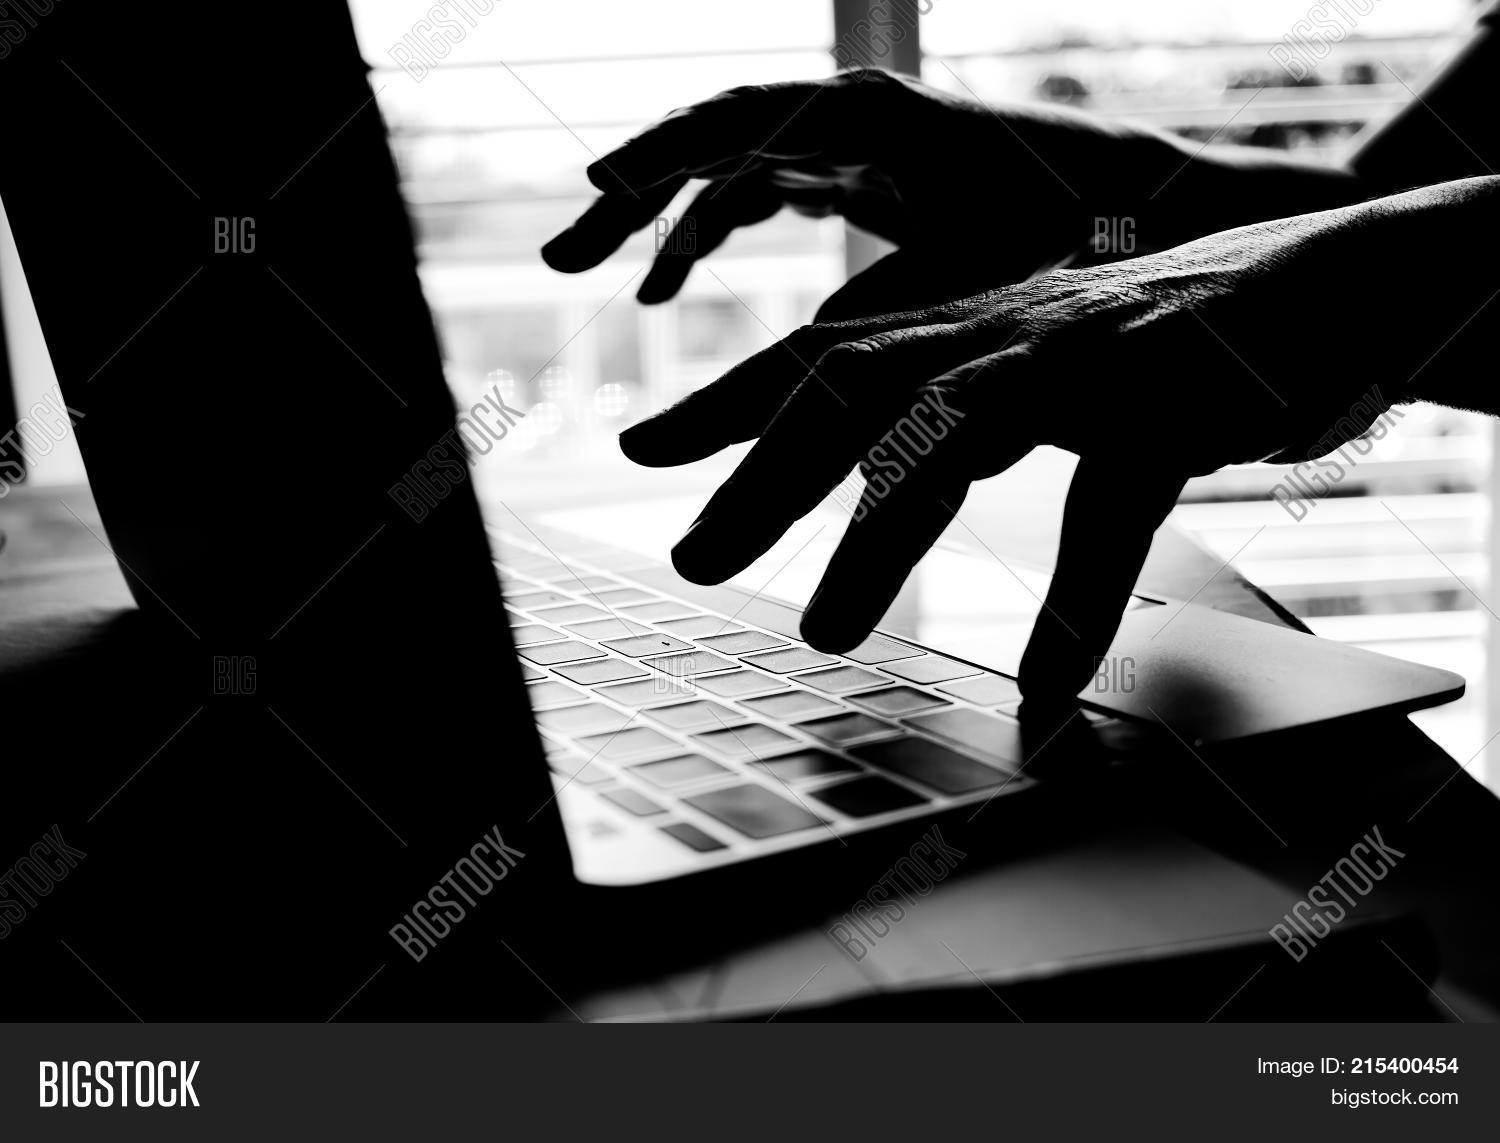 Cyber Crime Hand Image & Photo (Free Trial) | Bigstock